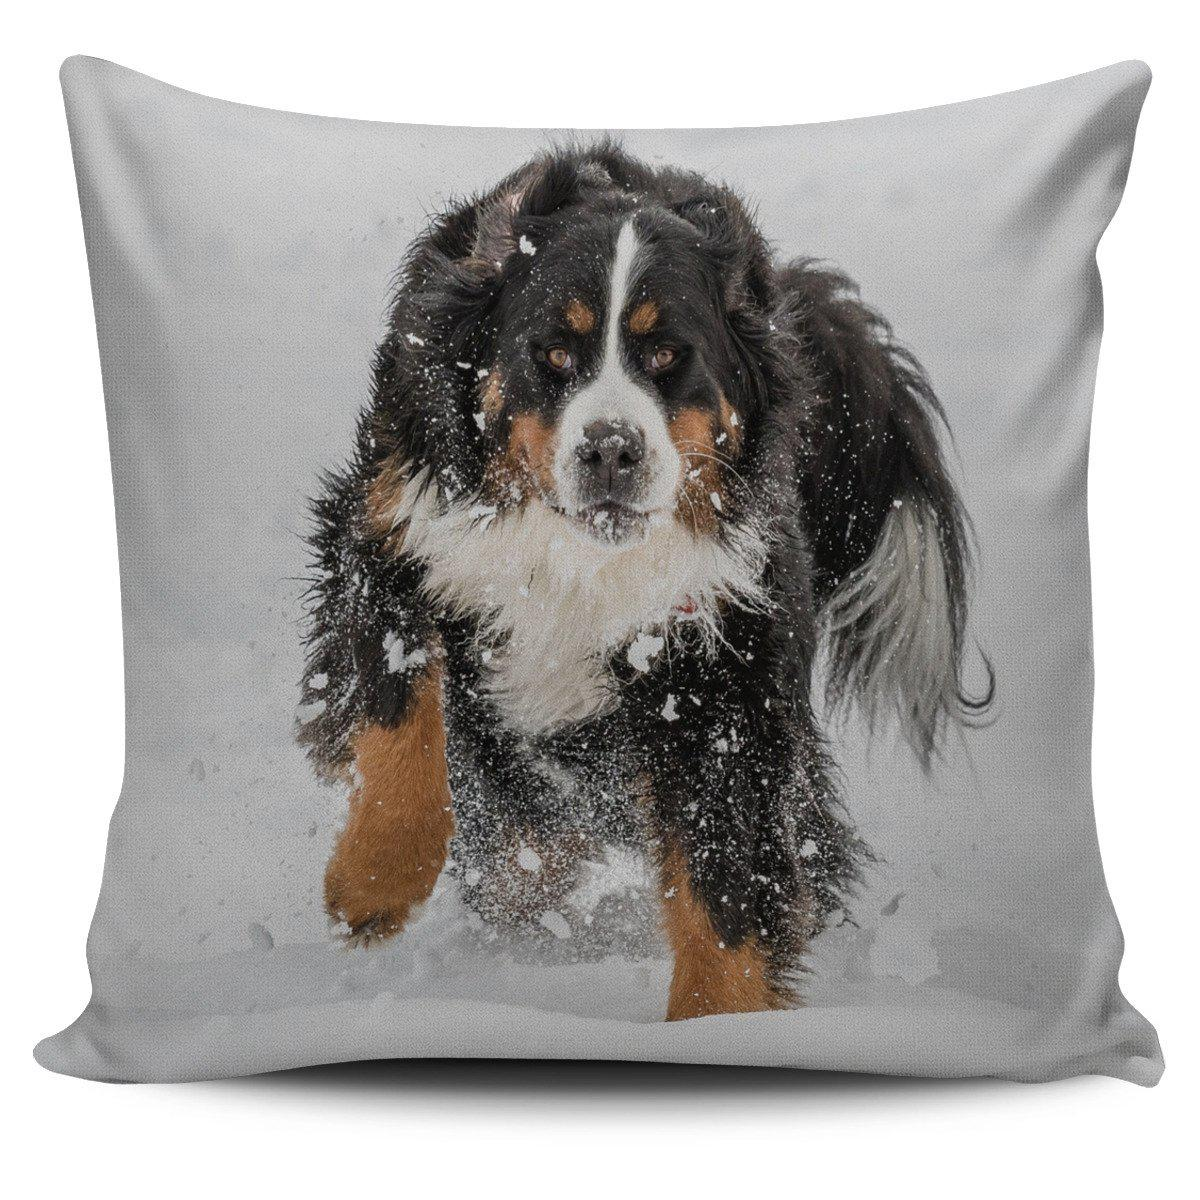 Shopeholic:Bernese Mountain Dog Pillow Cover